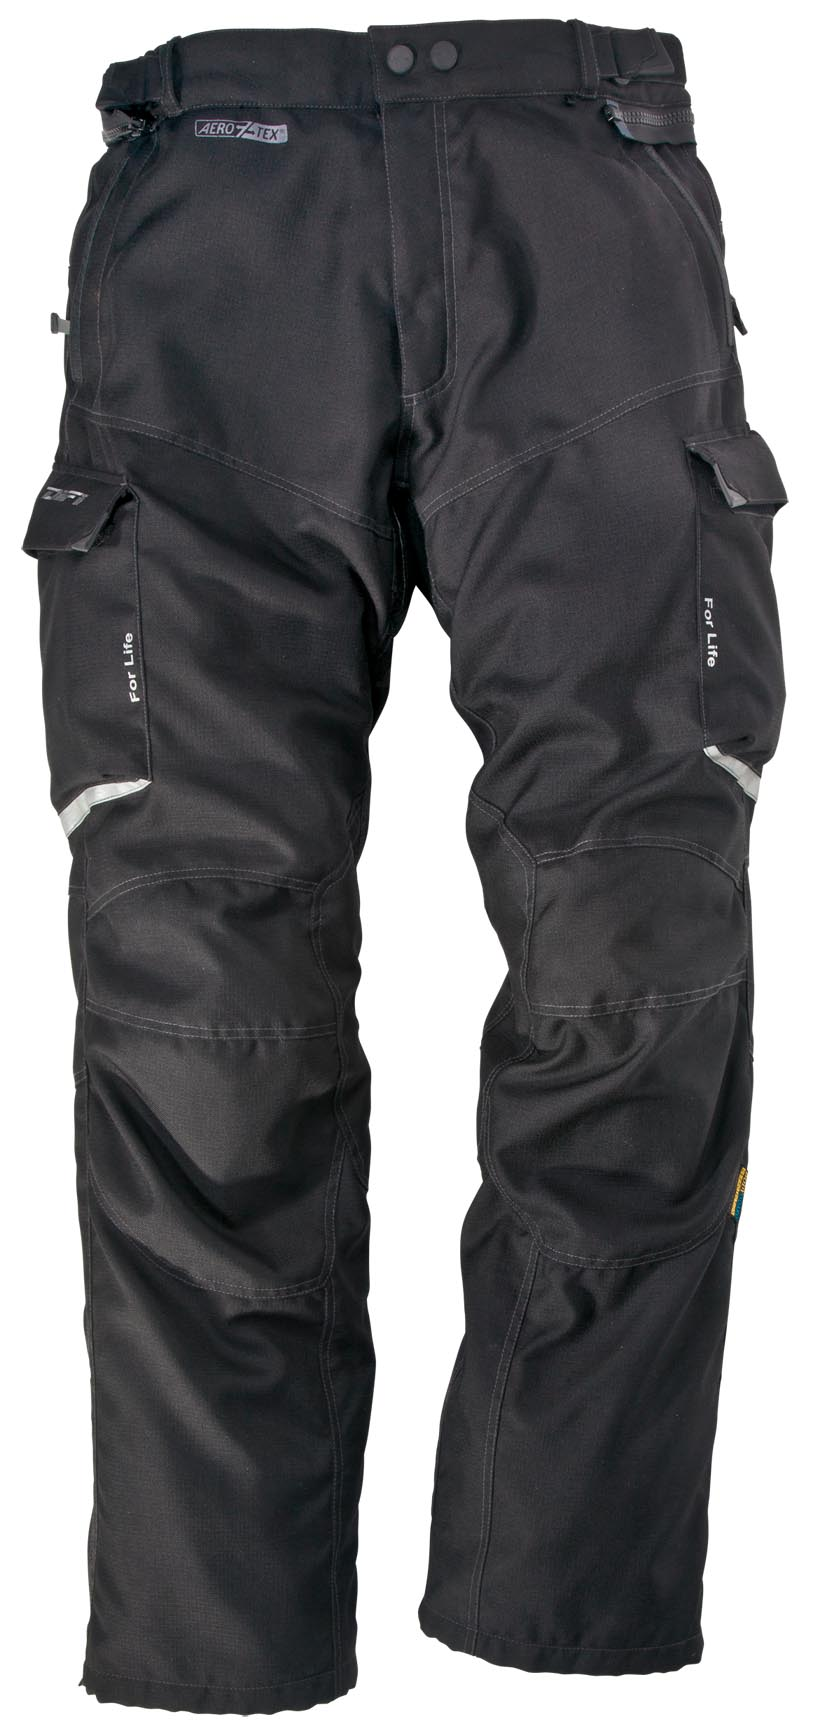 Pantalon Homme Level Aerotex noir - Difi